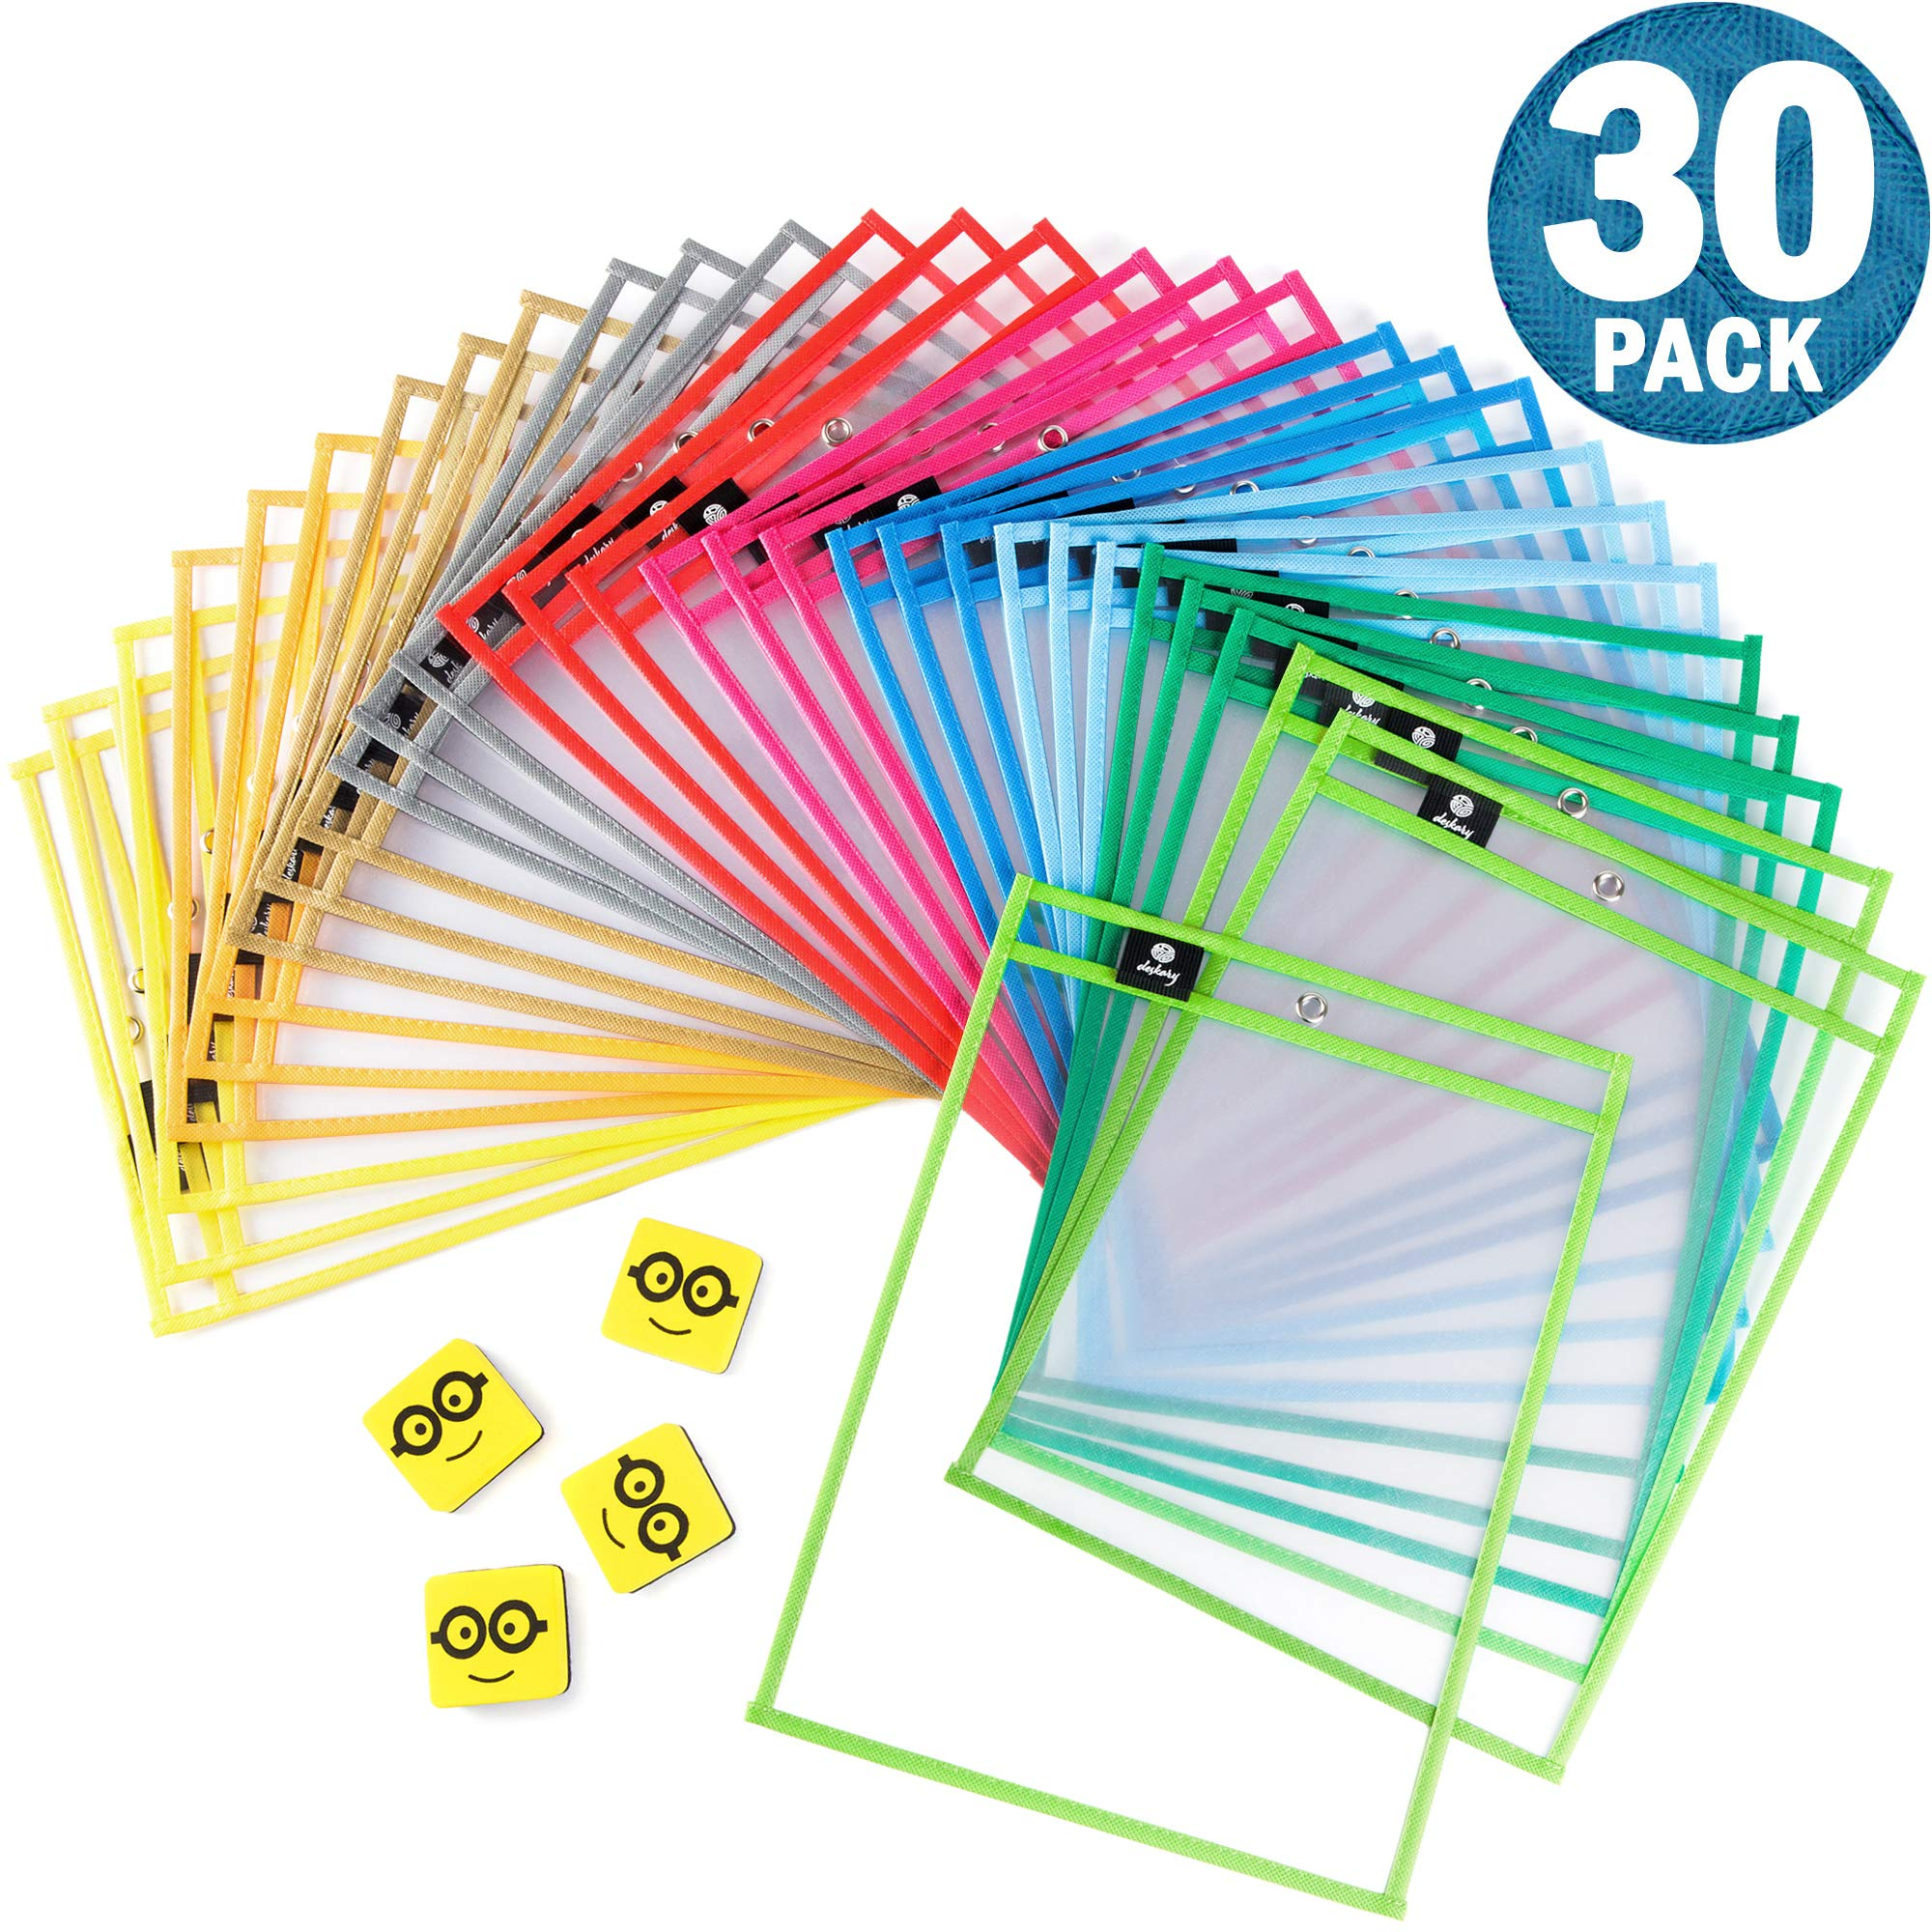 Dry Erase Pockets Reusable Sleeves - 30 Pack, Heavy Duty Oversized 10x14'' Clear Plastic Sheet Paper Protectors, 10 Assorted Colors, Teacher Supplies for Classroom, School & Homeschool Organization